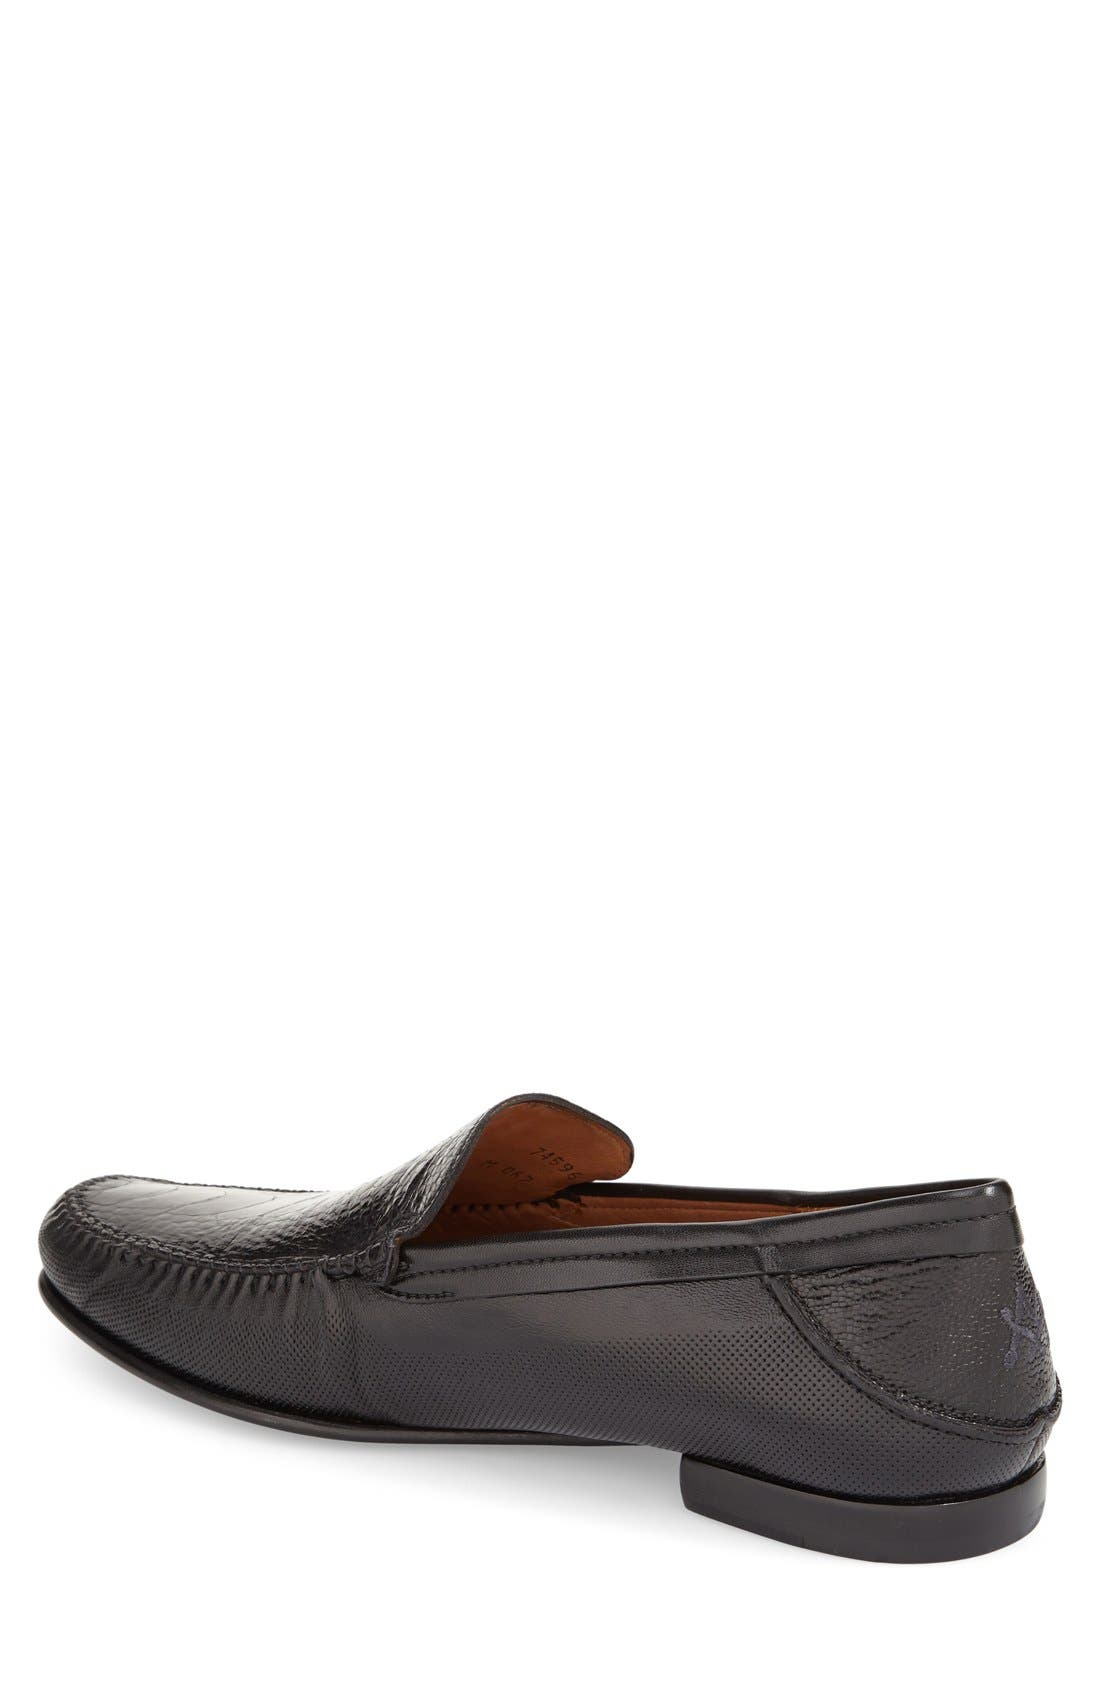 Alternate Image 2  - Mezlan 'Romero' Loafer (Men)